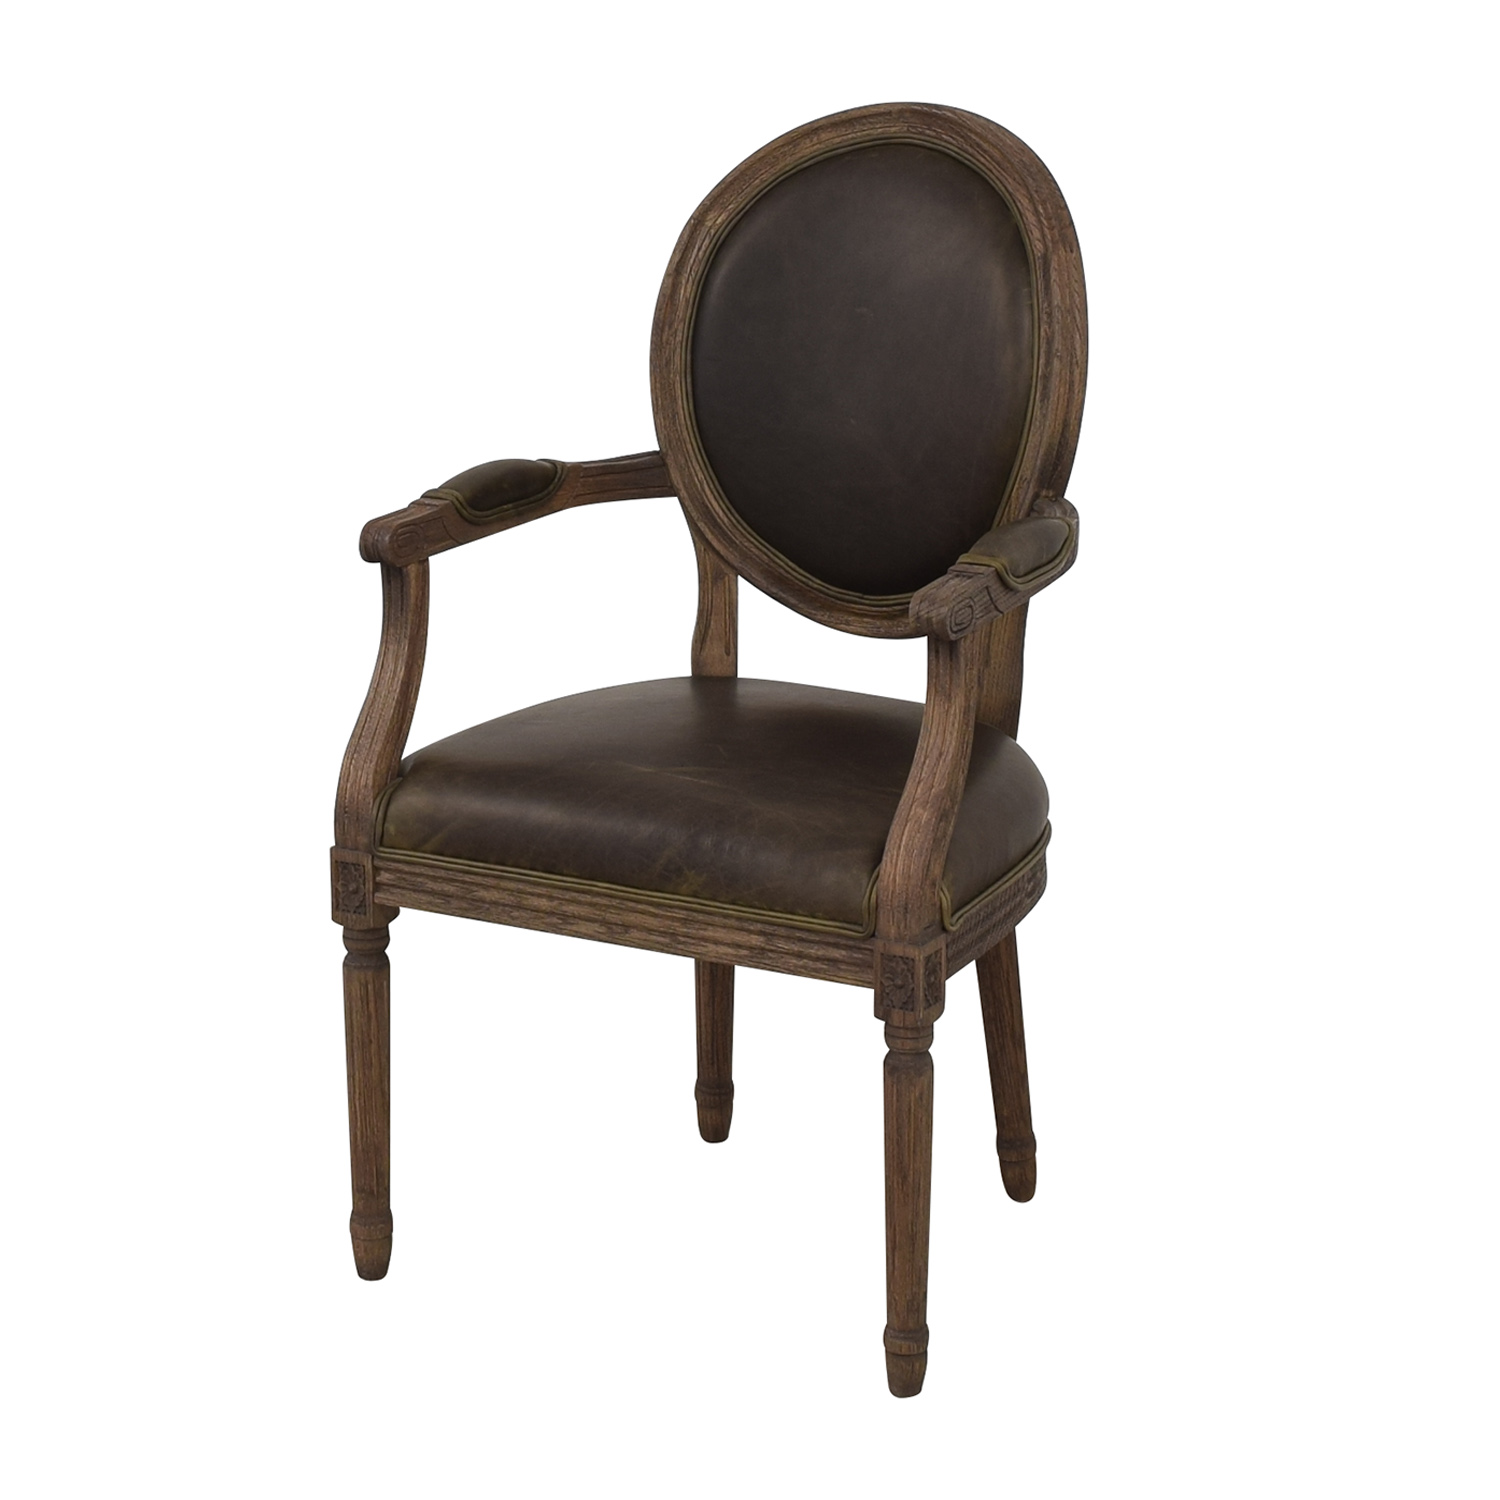 Restoration Hardware Restoration Hardware Vintage French Round Leather Armchairs second hand